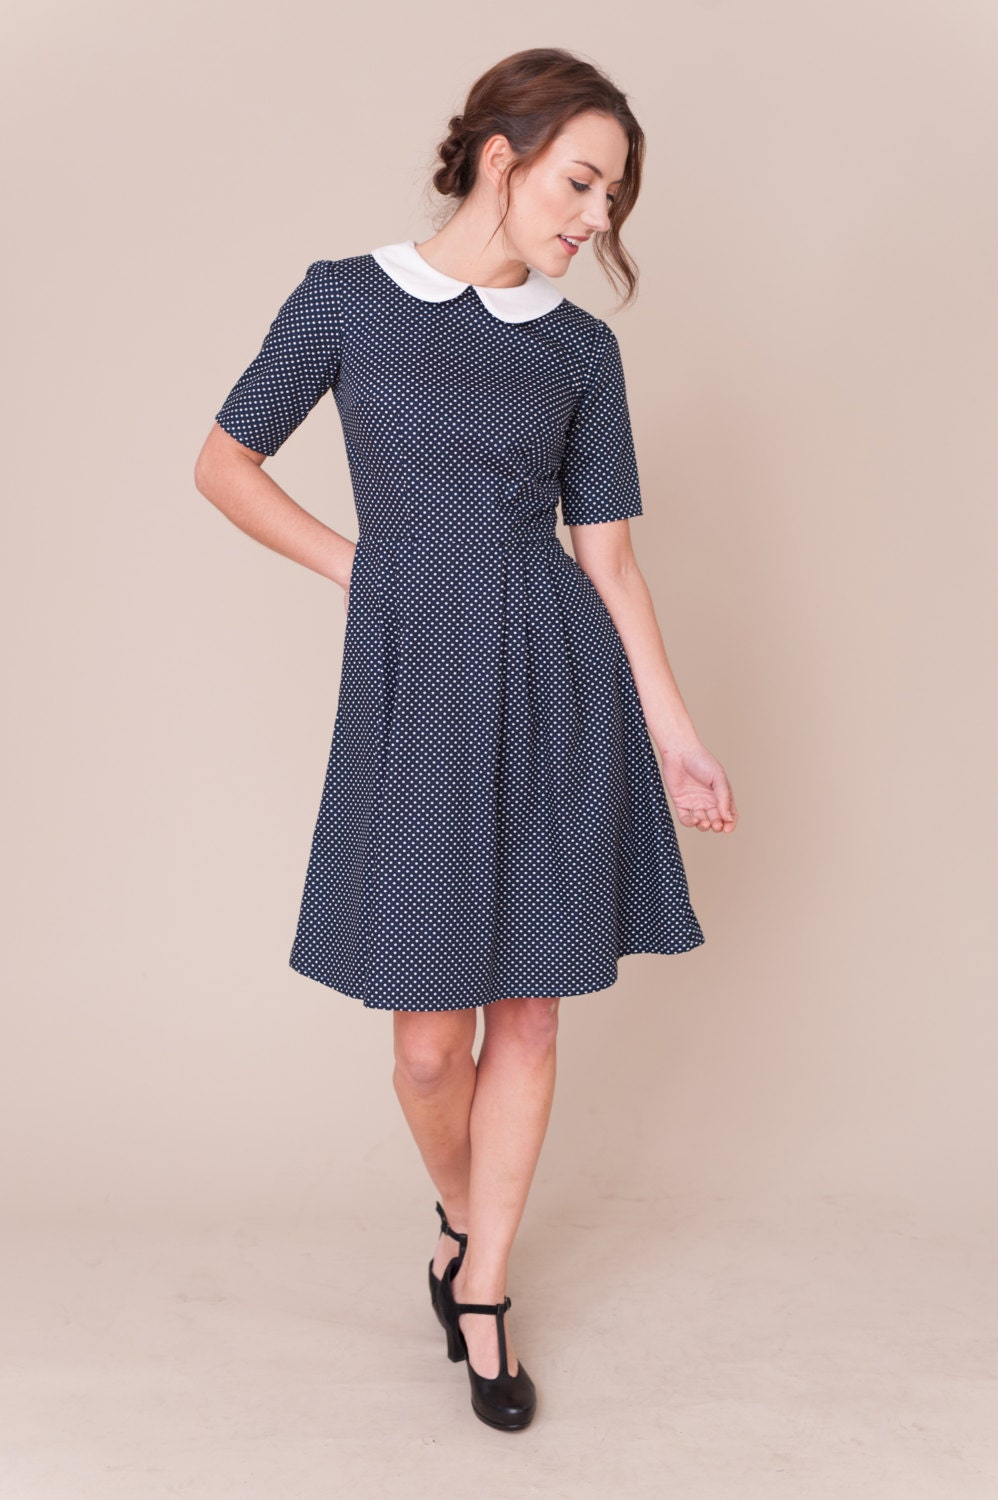 You searched for: peter pan collar dress! Etsy is the home to thousands of handmade, vintage, and one-of-a-kind products and gifts related to your search. No matter what you're looking for or where you are in the world, our global marketplace of sellers can help you .